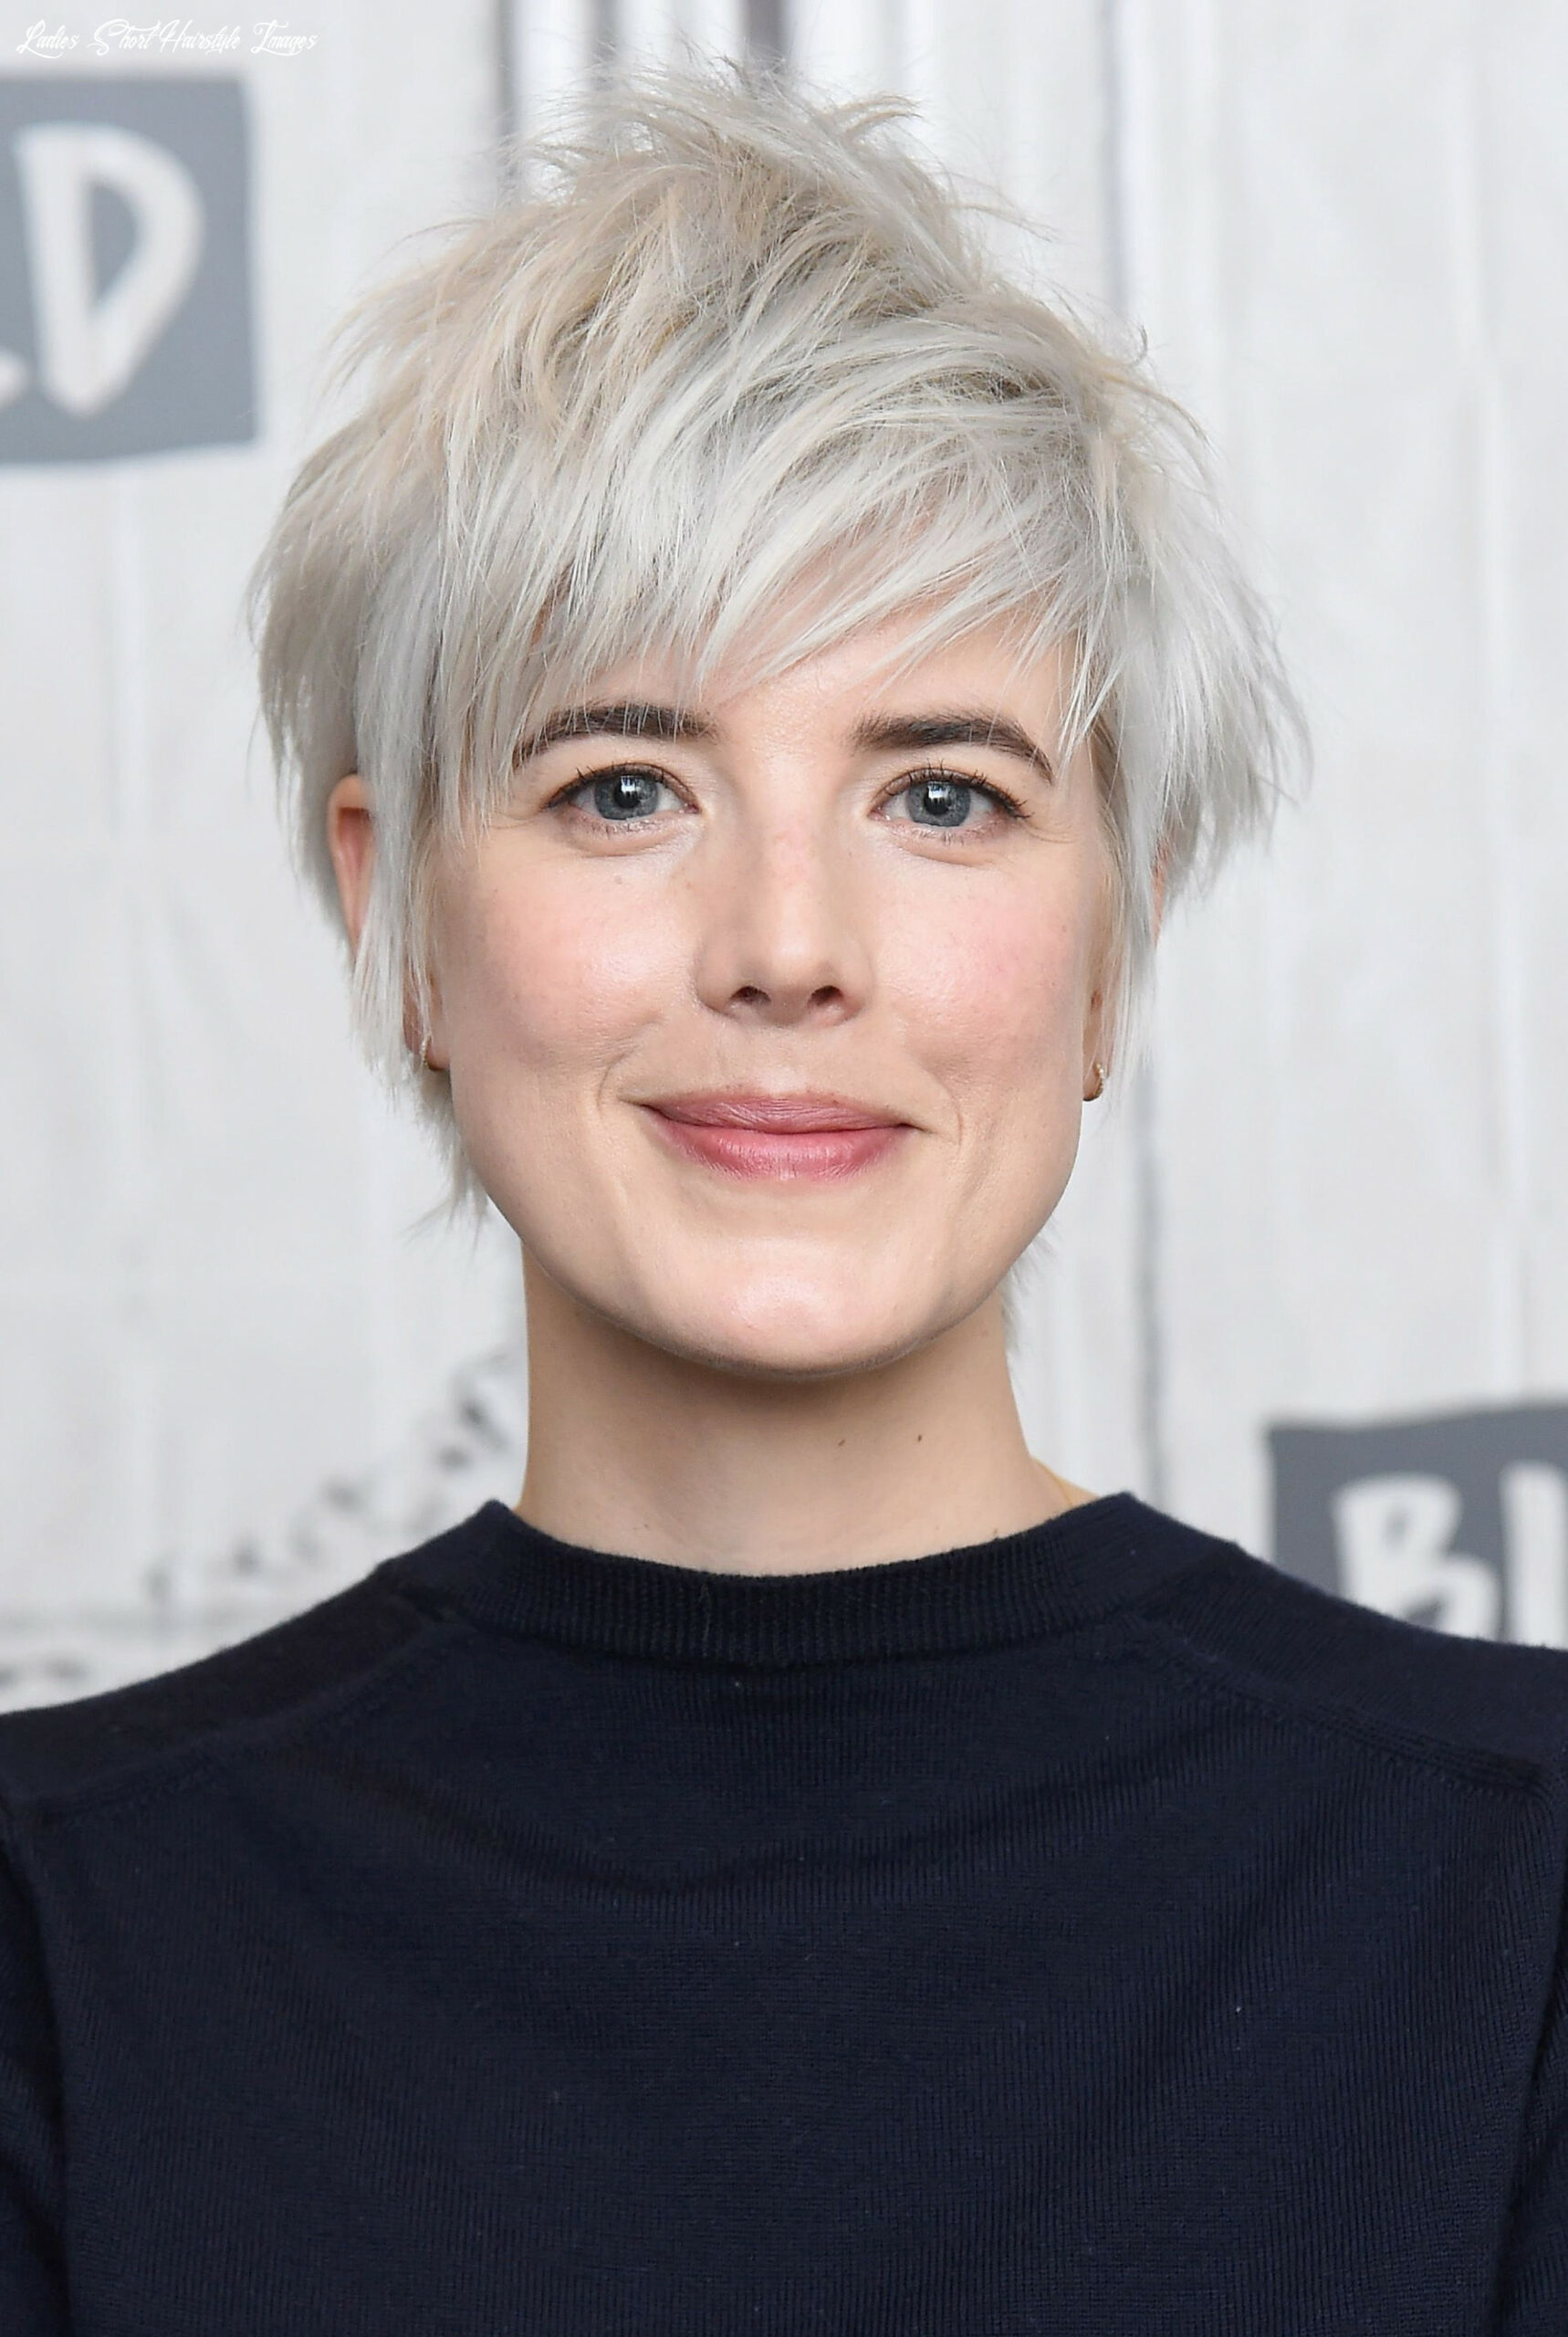 12 best short hairstyles, haircuts & short hair ideas for 12 ladies short hairstyle images